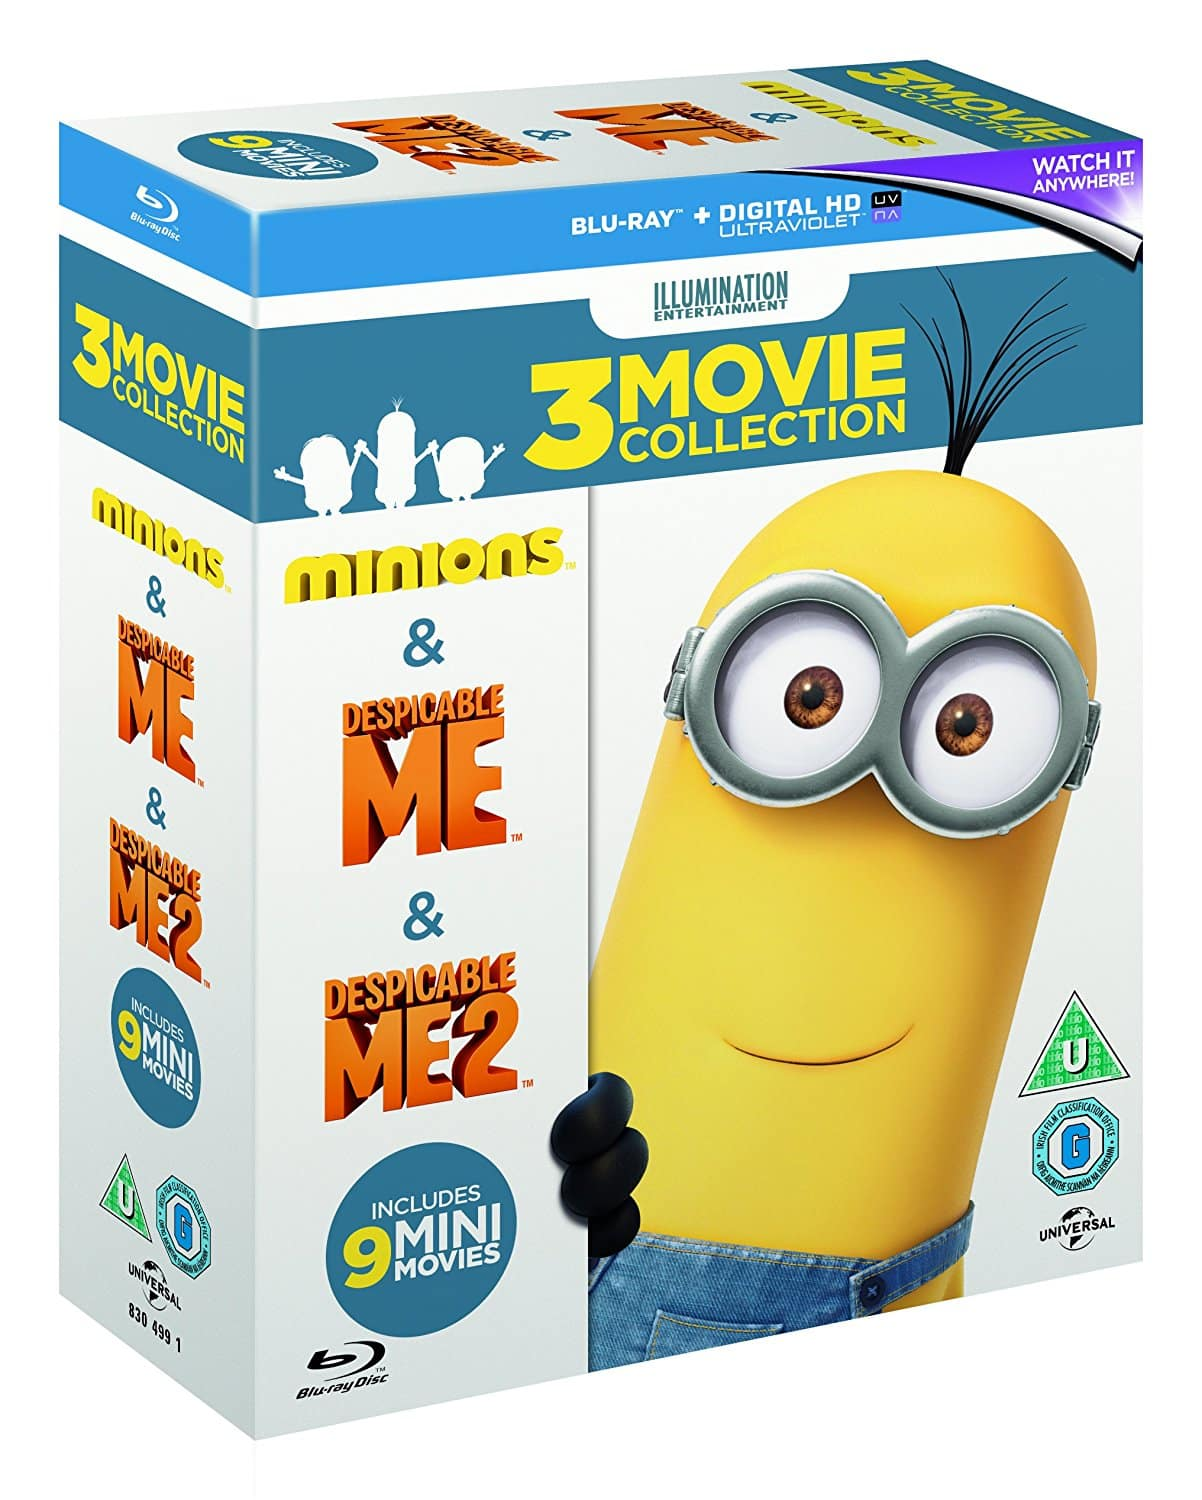 Despicable Me (1 / 2 / Minions) Box Set (Region Free Blu-ray + Digital HD) $11.58 Shipped